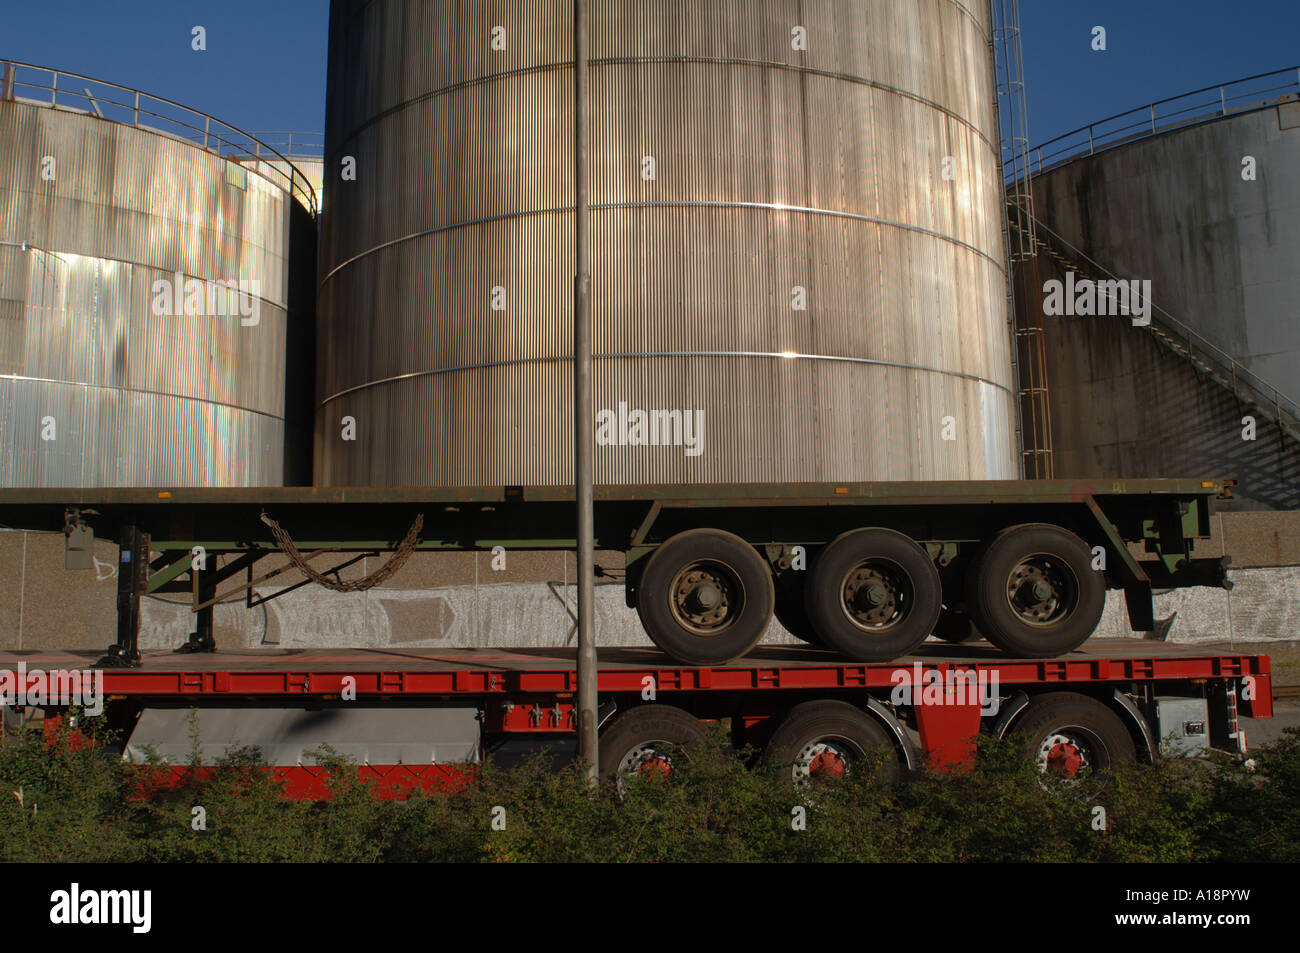 Semi abstract image of gas storage containers and lorry trailer